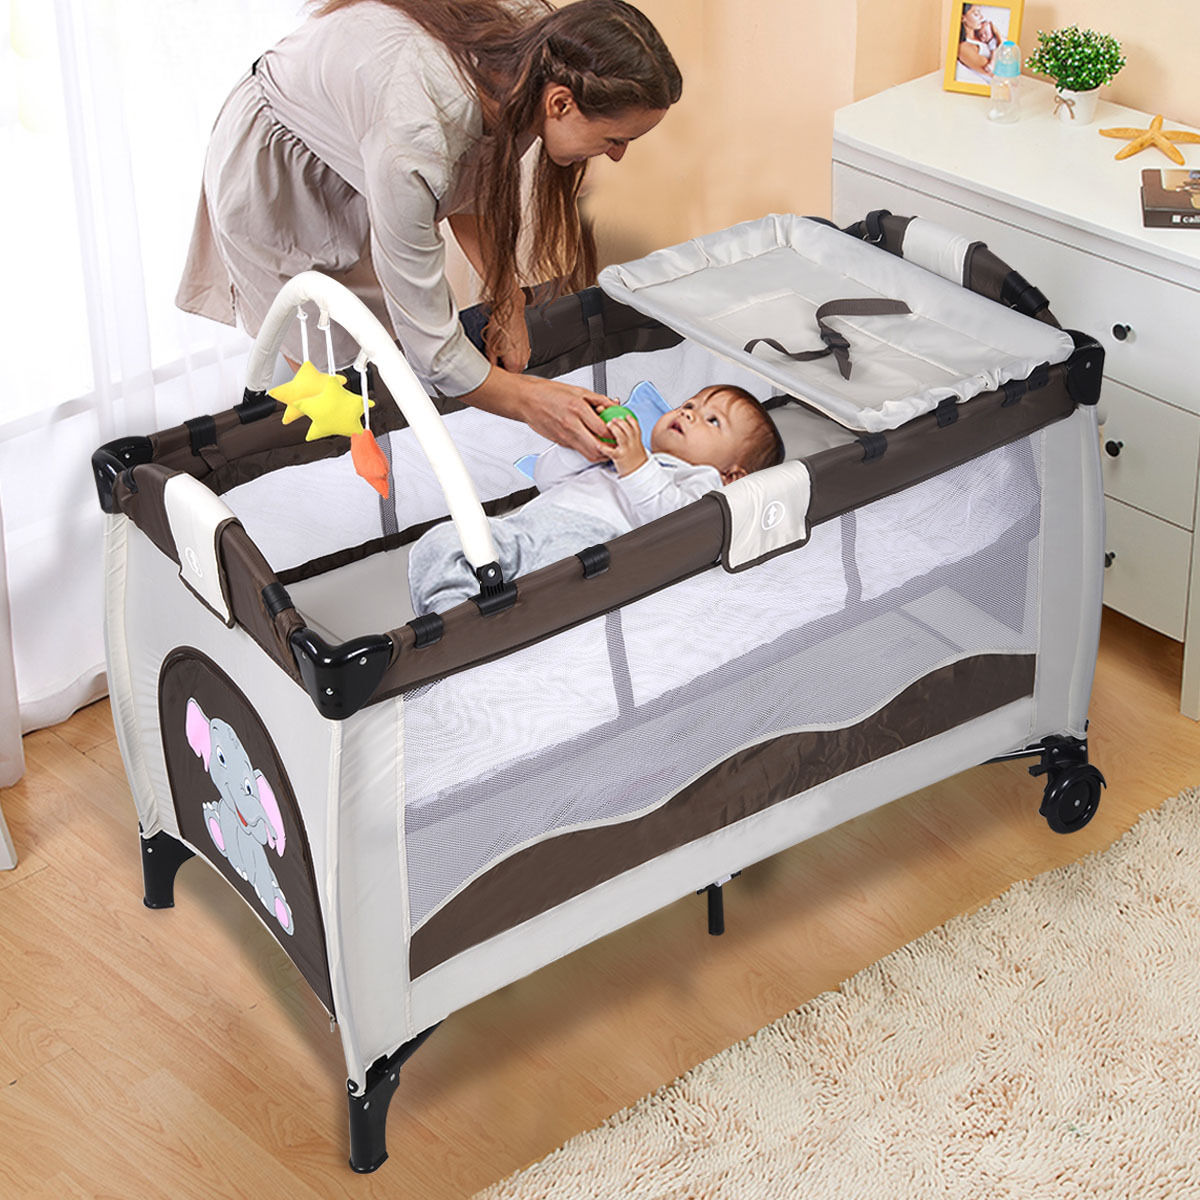 Goplus Coffee Baby Crib Playpen Playard Pack Travel Infant Bassinet Bed Foldable